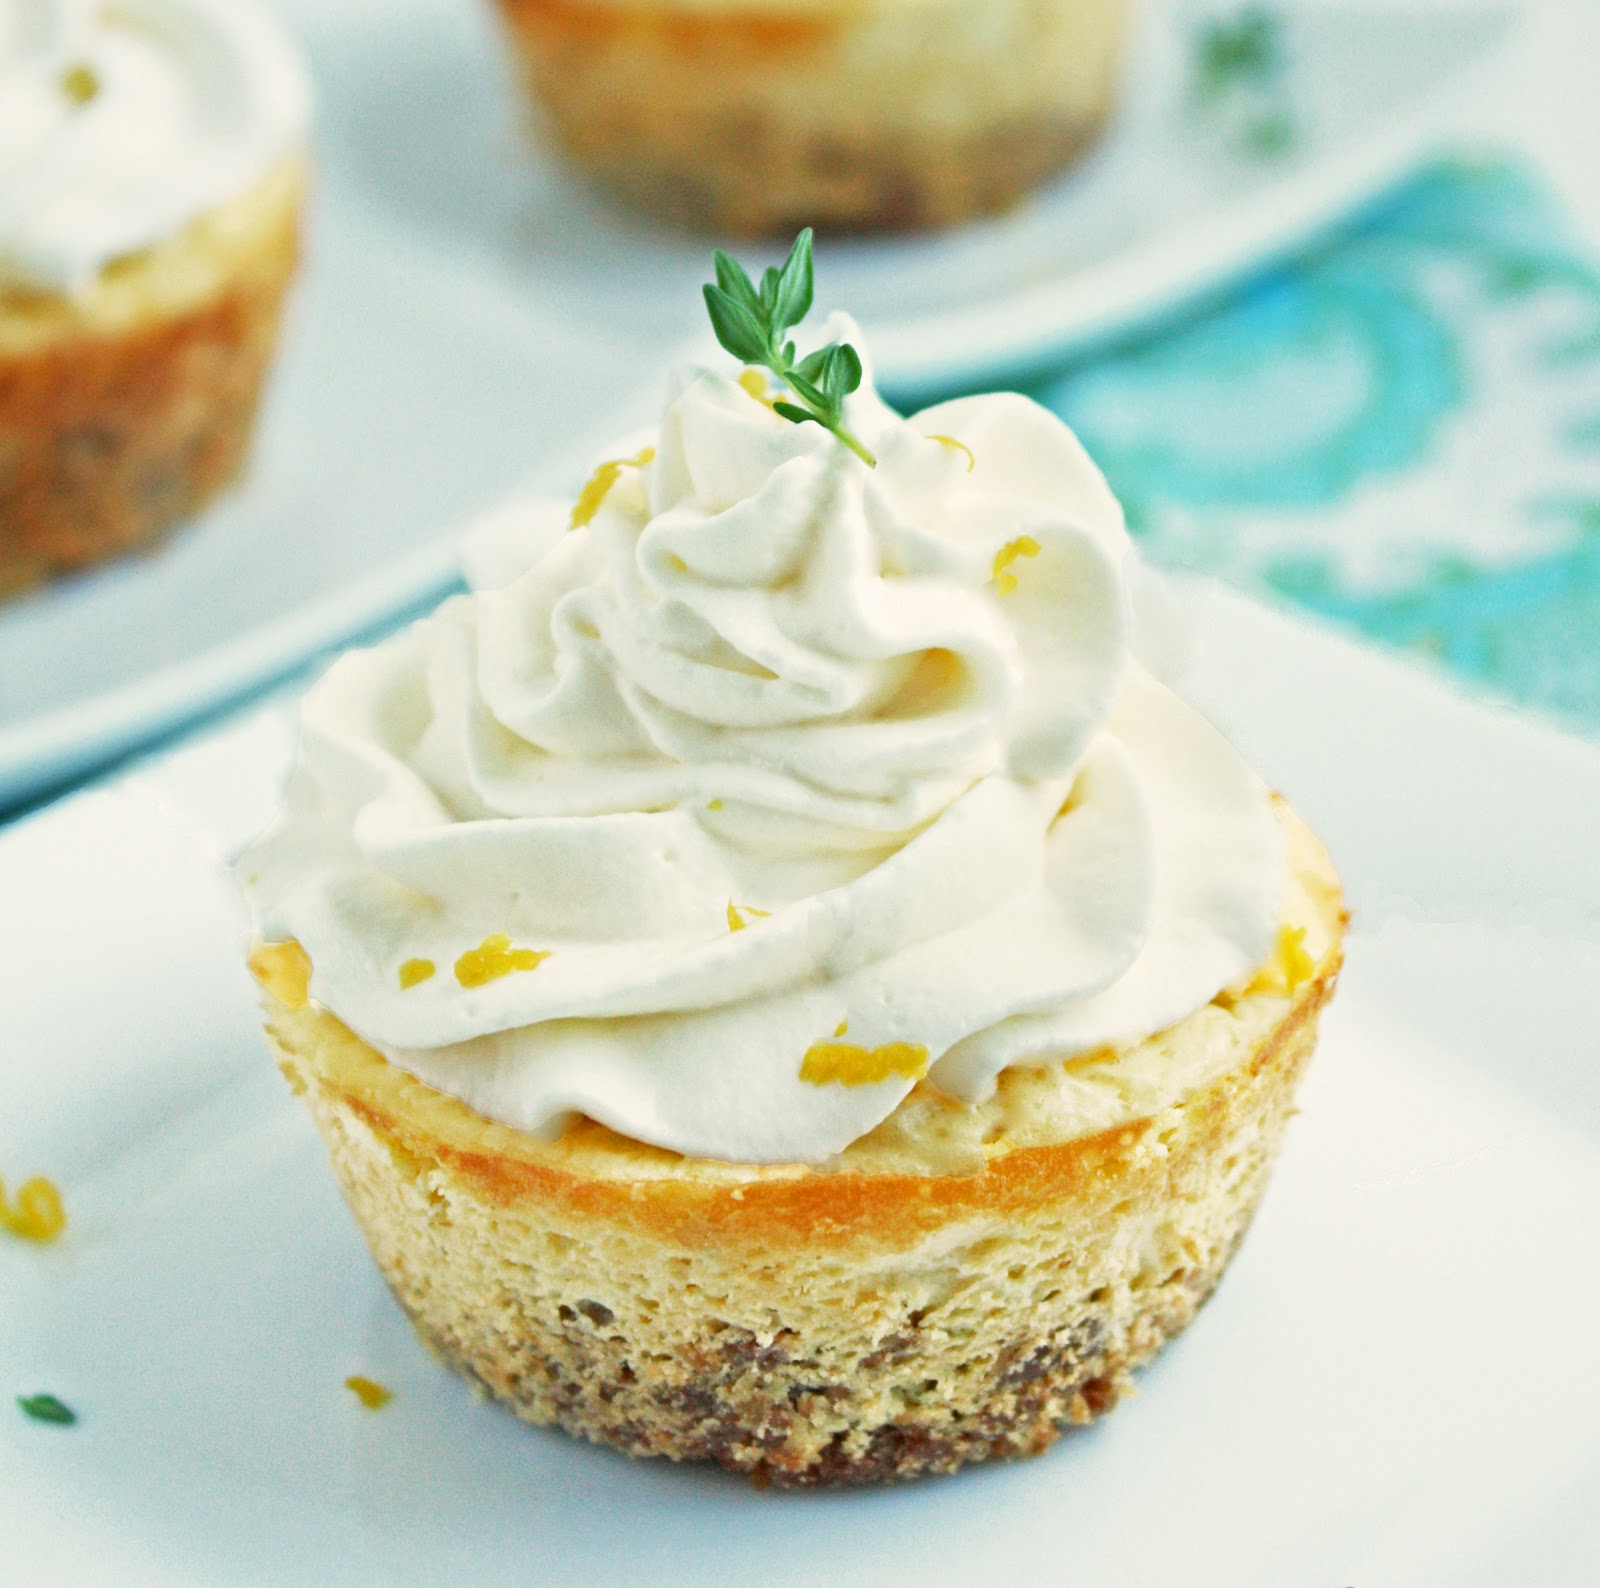 Lemon, Thyme and Chevre Cheesecakes | I Breathe I'm Hungry